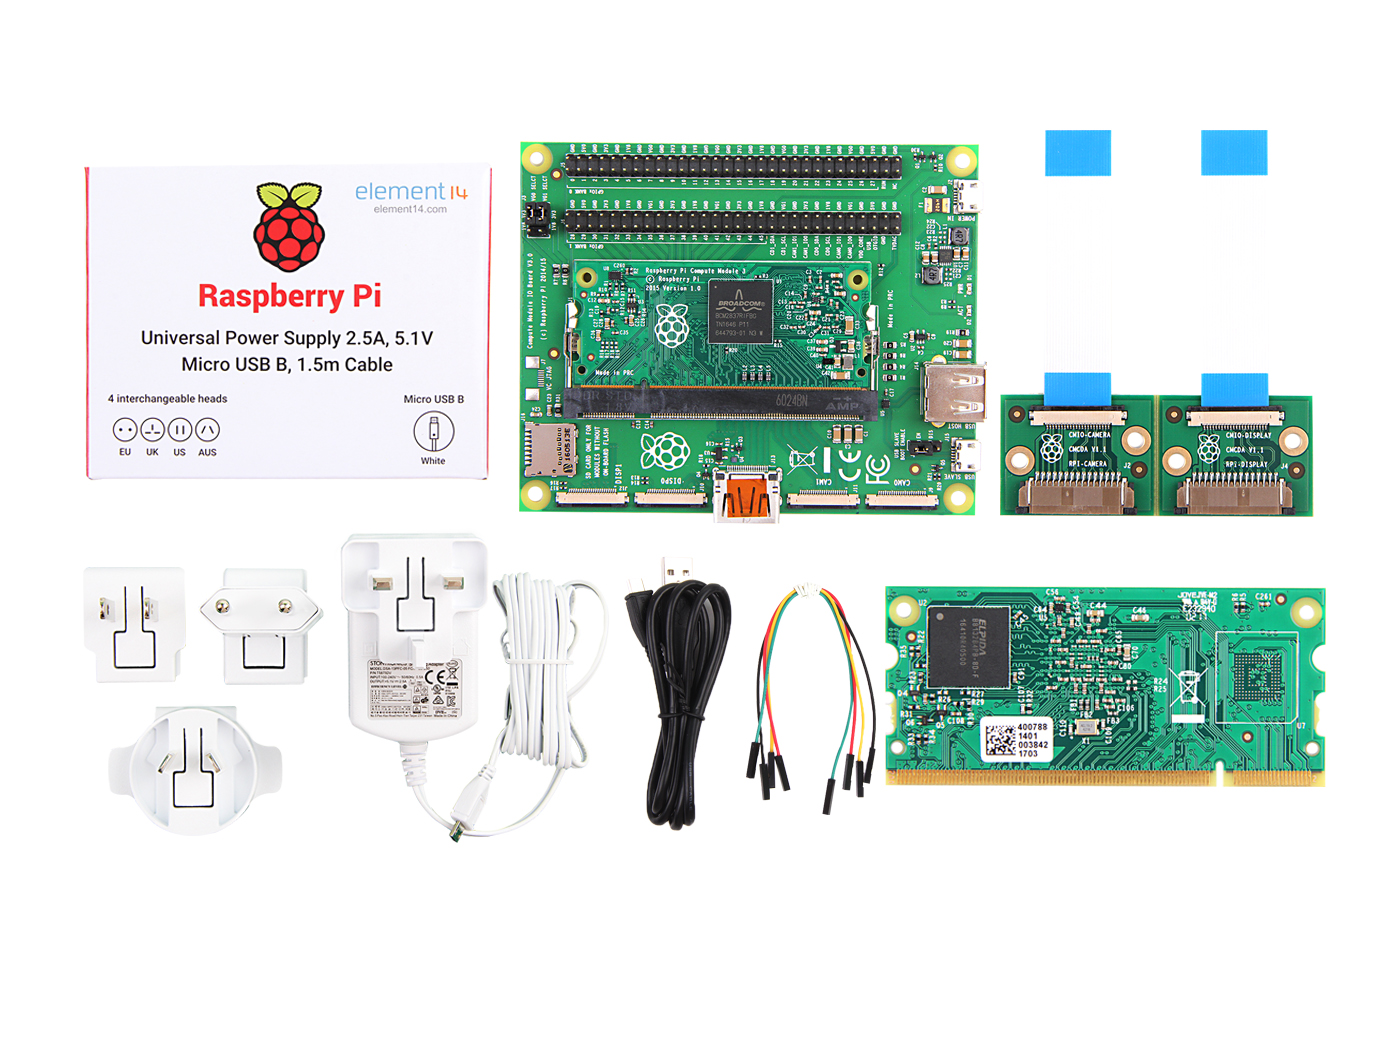 Raspberry Pi Compute Module 3 Dev Kit - Seeed Studio